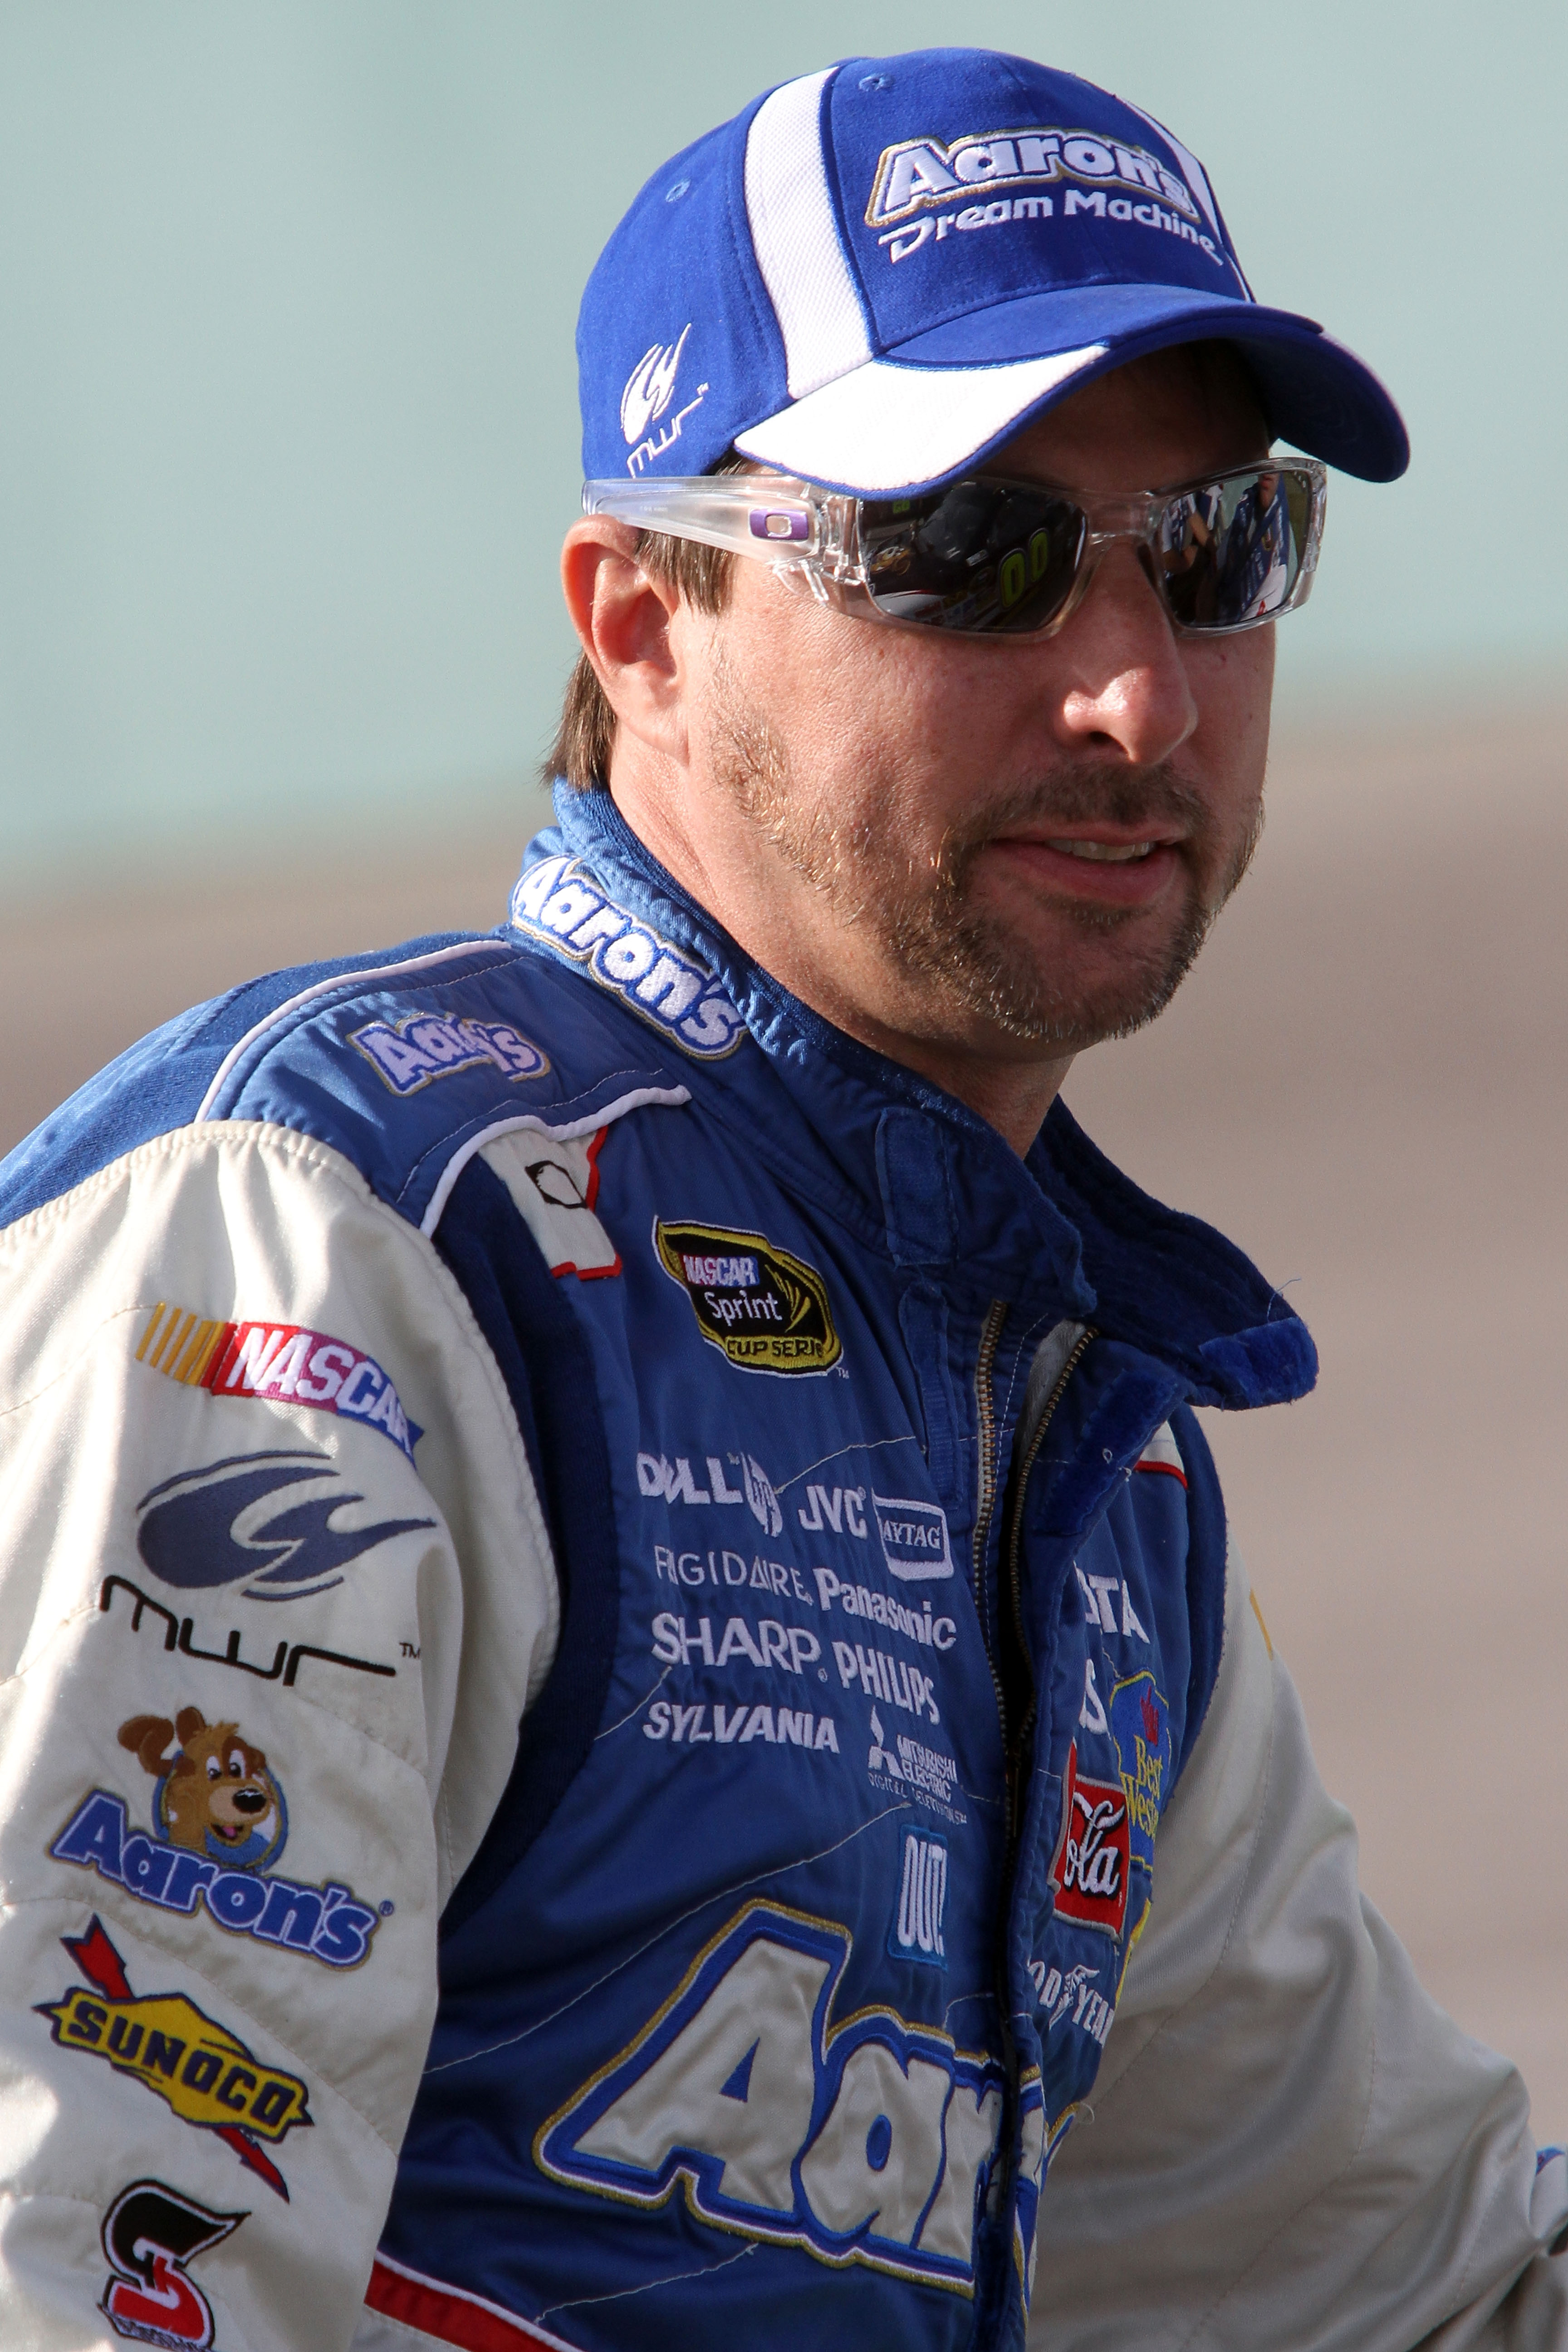 HOMESTEAD, FL - NOVEMBER 19:  David Reutimann, driver of the #00 Aaron's Dream Machine Toyota, sits on pit road wall during qualifying for the NASCAR Sprint Cup Series Ford 400 at Homestead-Miami Speedway on November 19, 2010 in Homestead, Florida.  (Phot